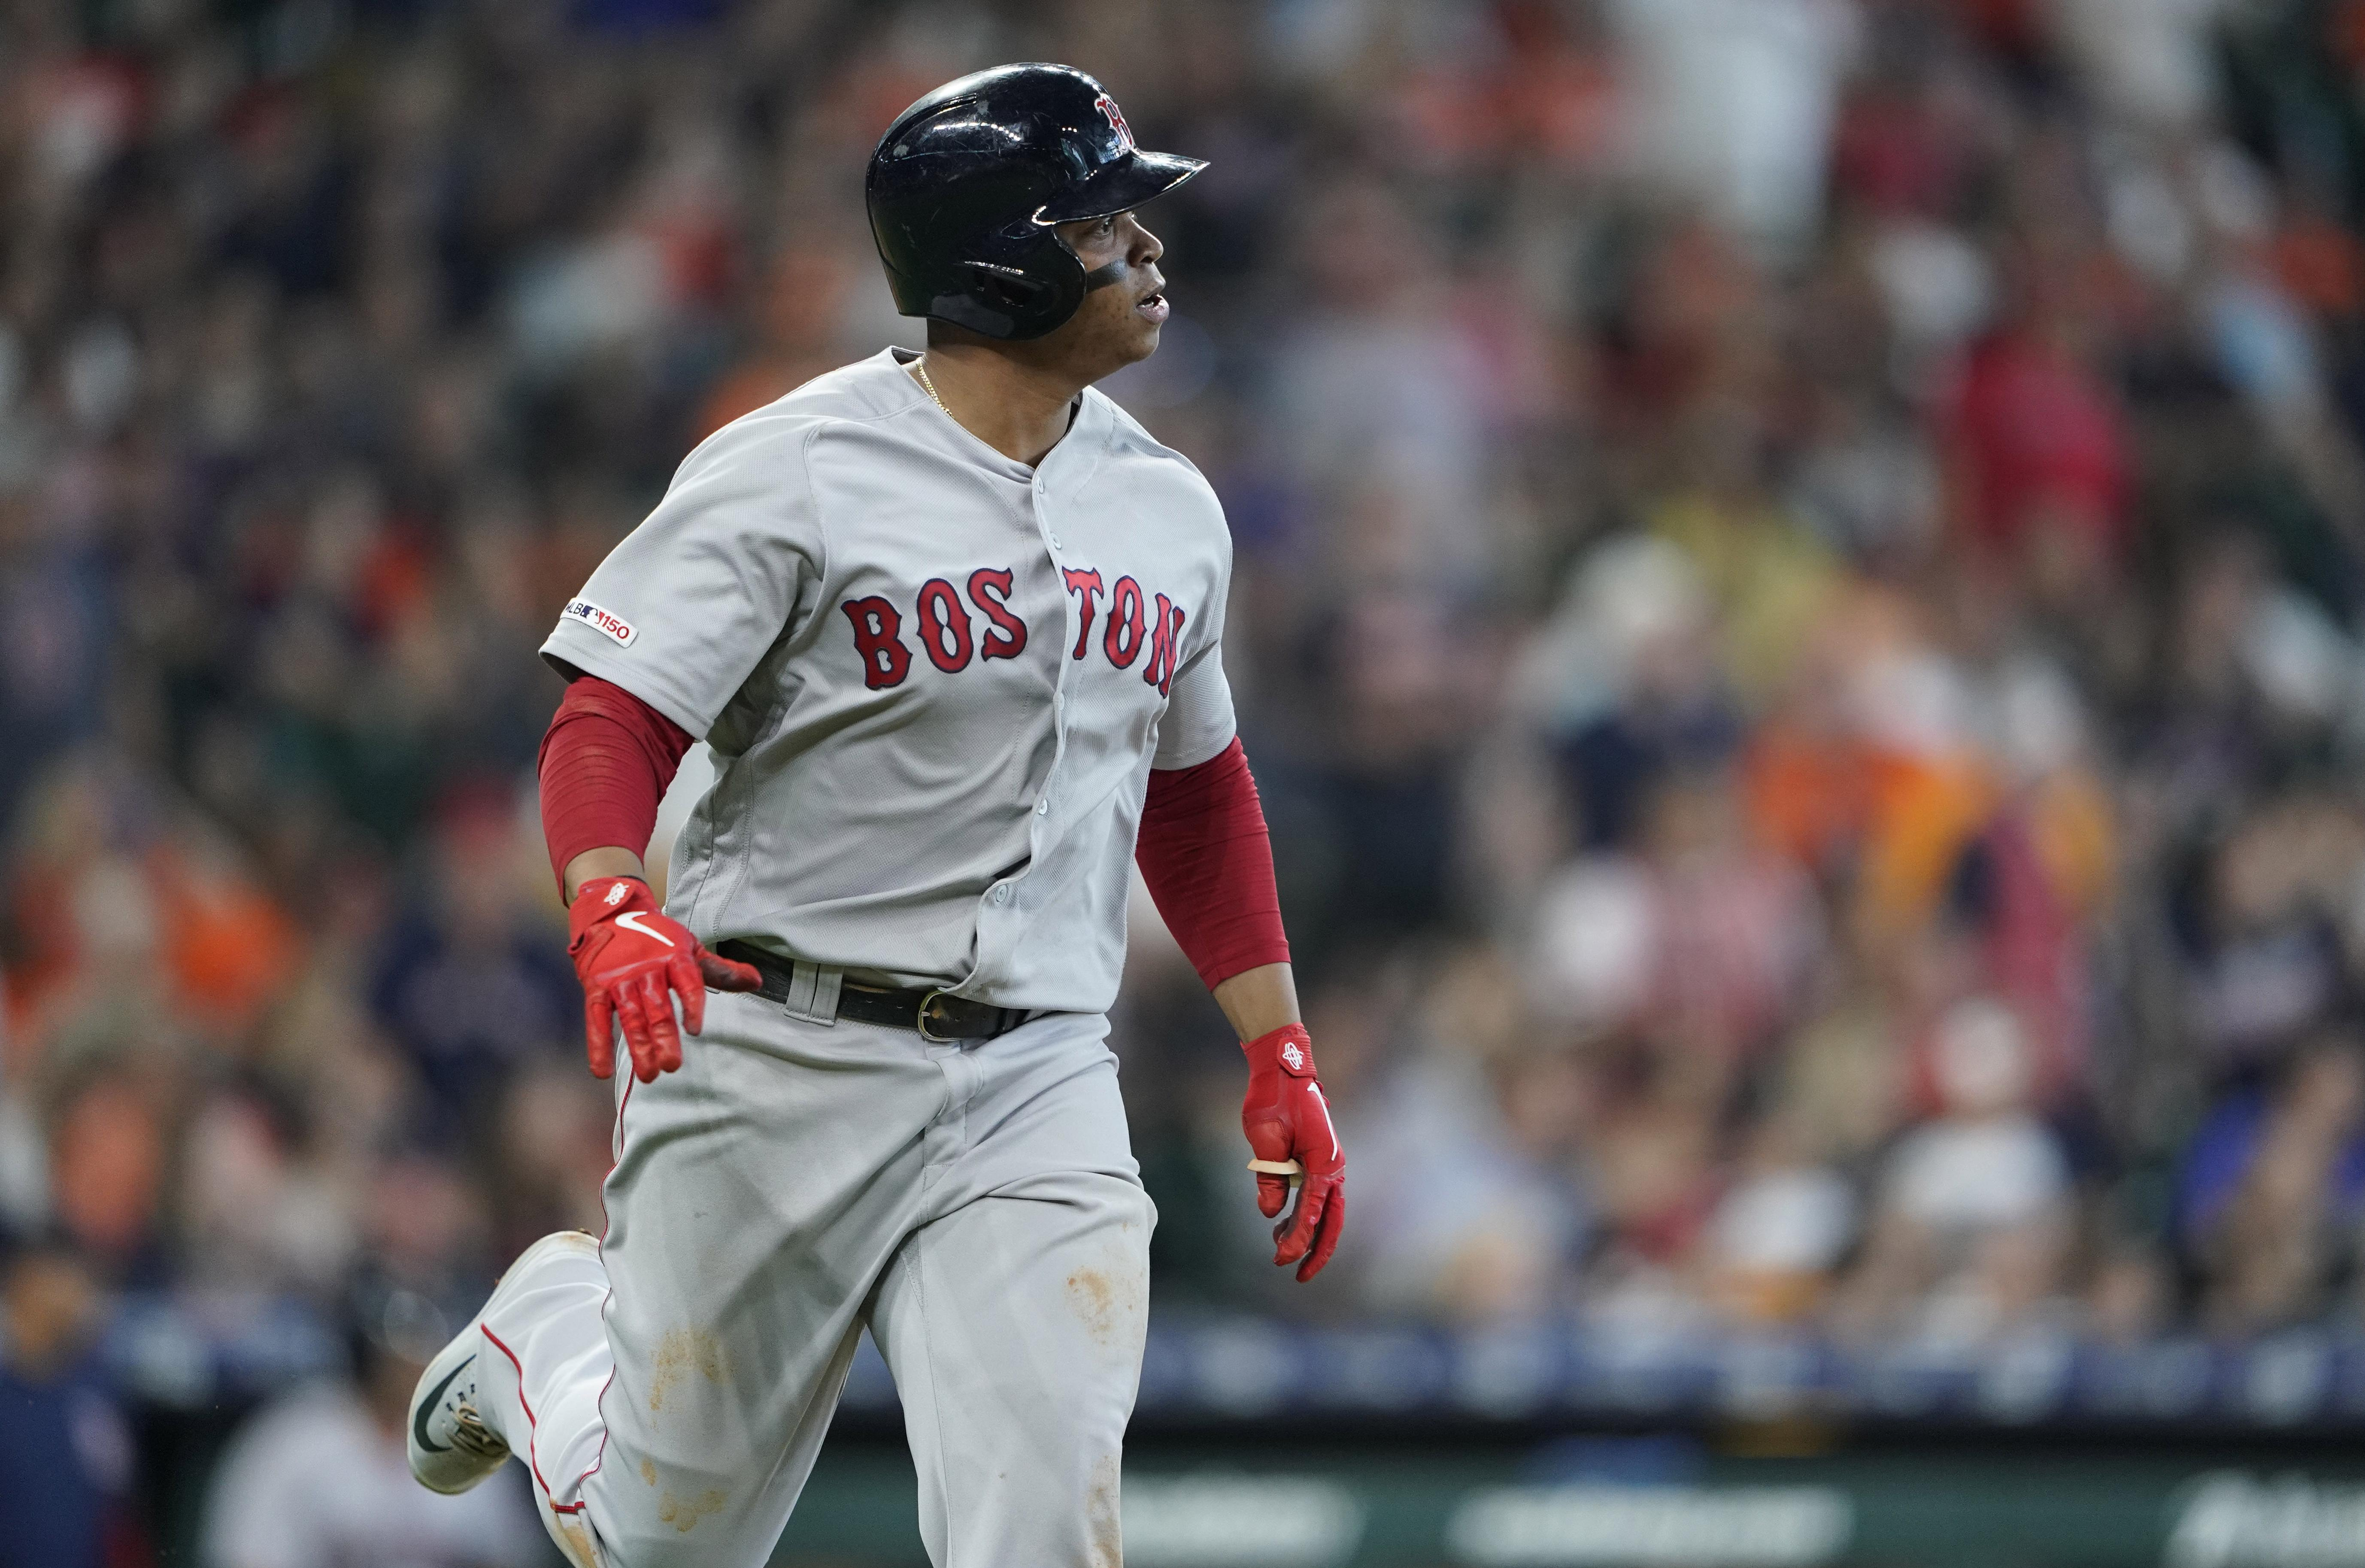 ffb0c277b27 Boston Red Sox s Rafael Devers watches his home run against the Houston  Astros during the fourth